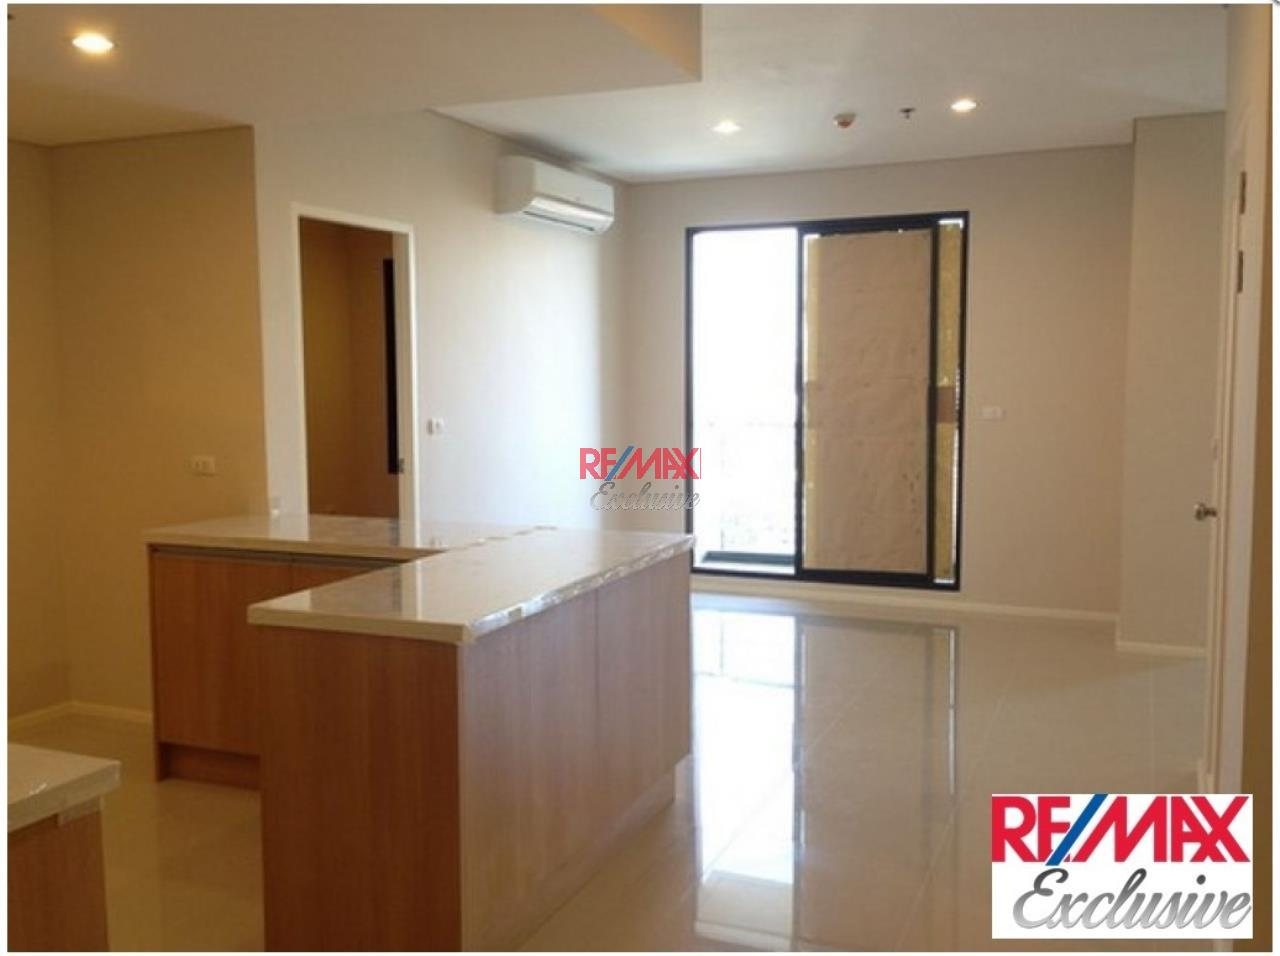 RE/MAX Exclusive Agency's Villa Asoke Penthouse With Scenic View, 5 Bedrooms, 200 Sqm, For Sale 31,300,000 THB 2